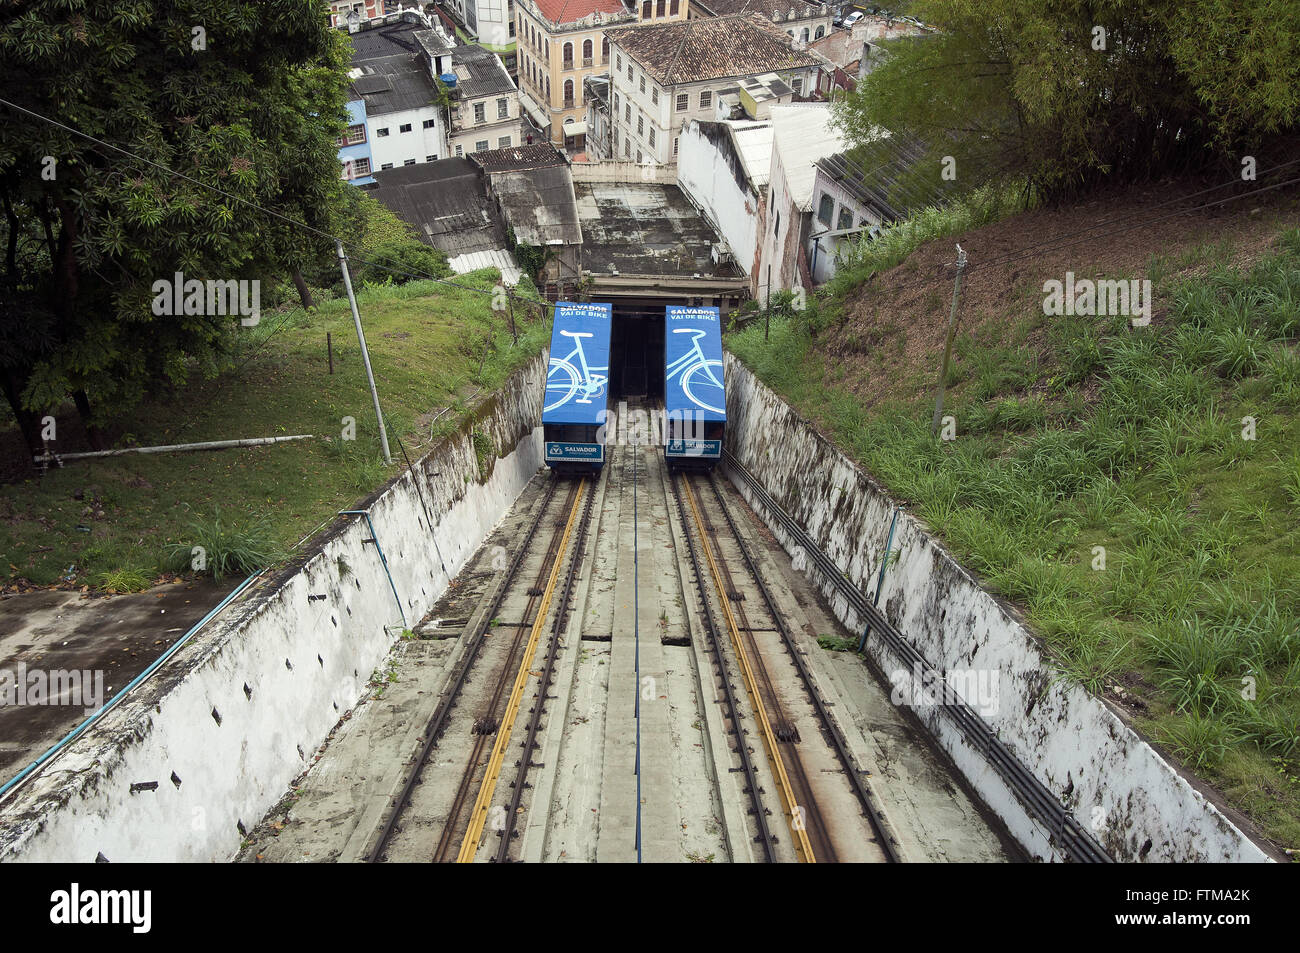 Inclined Plane Goncalves - connecting the historic center to the lower city - Stock Image